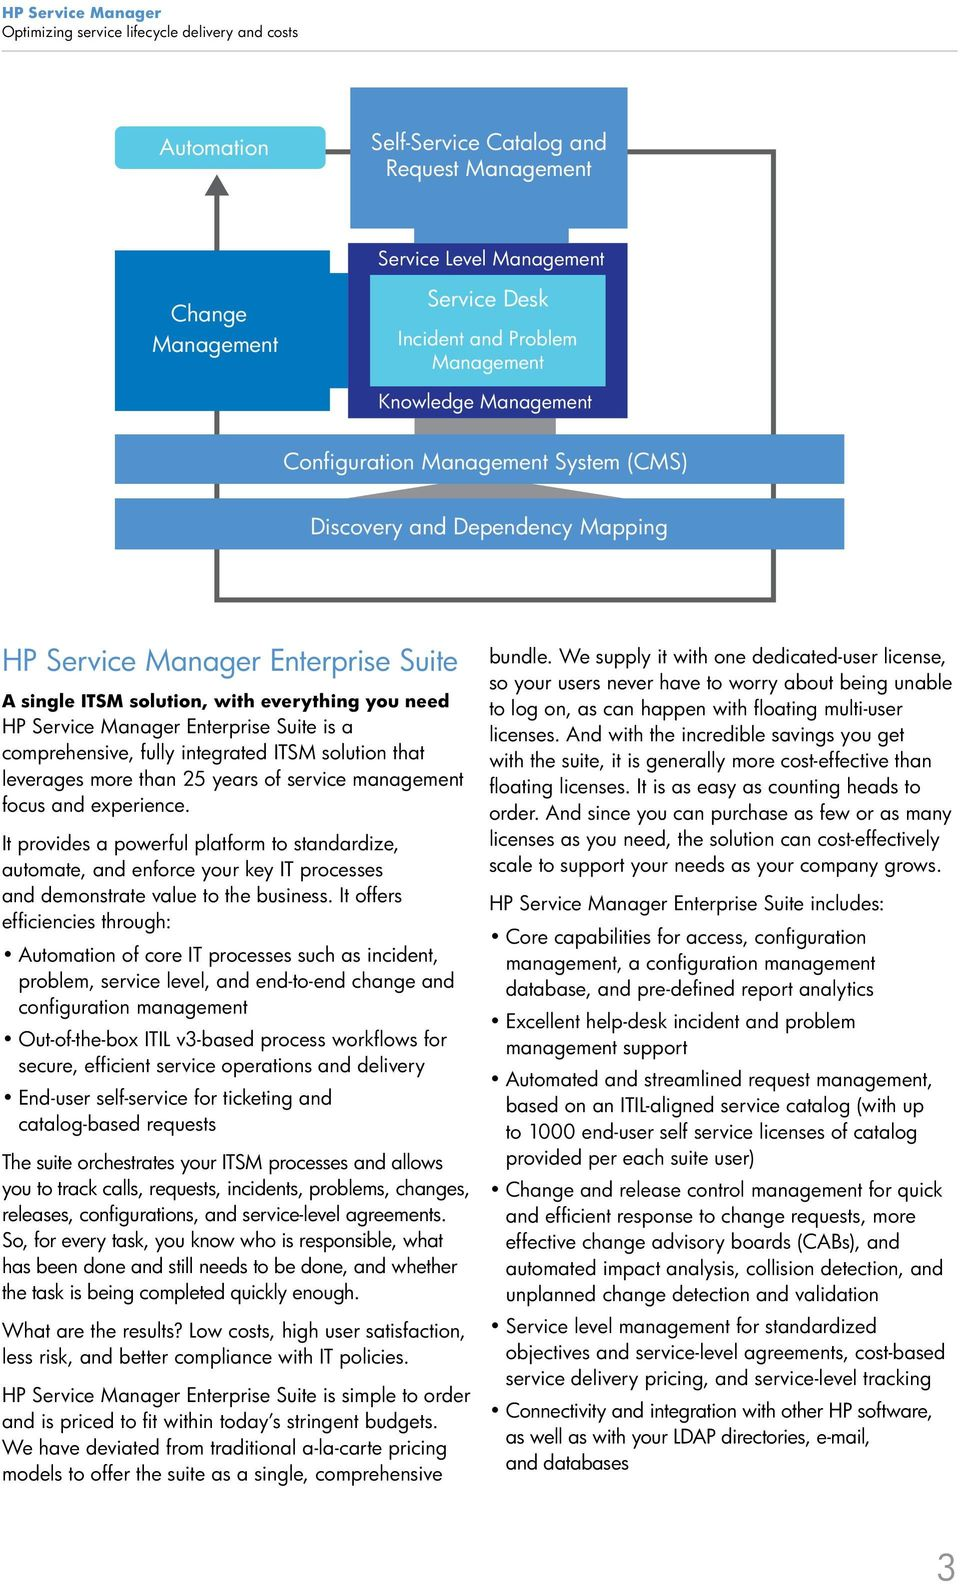 Manager Enterprise Suite is a comprehensive, fully integrated ITSM solution that leverages more than 25 years of service management focus and experience.